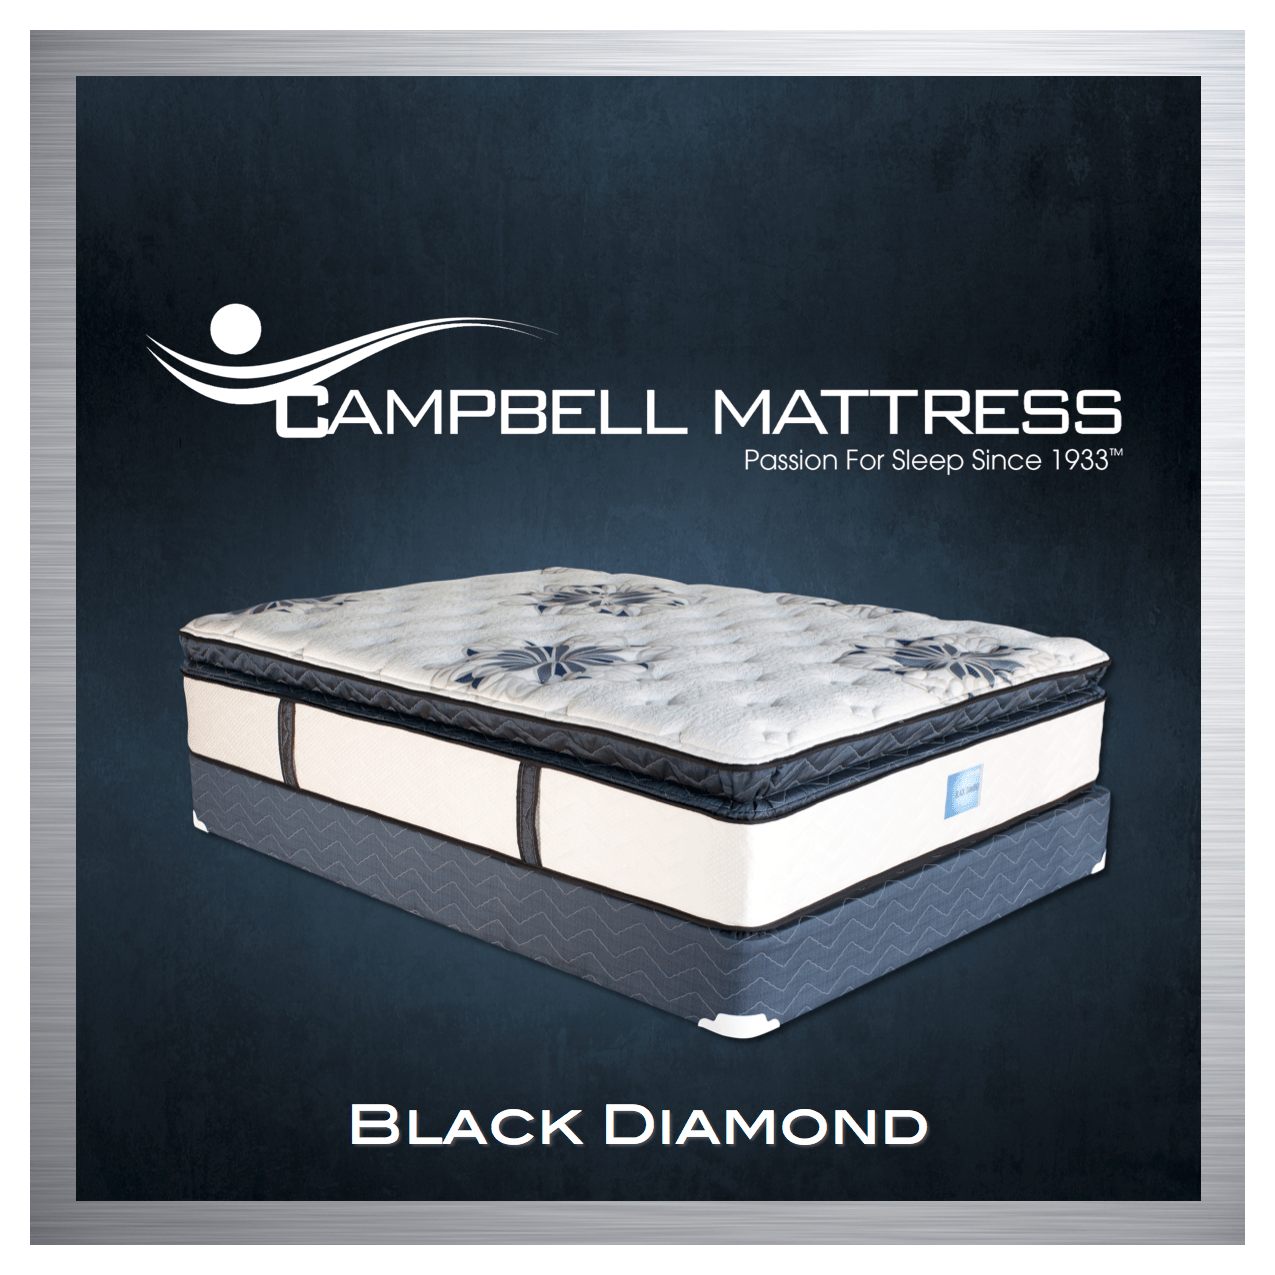 The Mattress Company Campbell Anniversary Special Edition